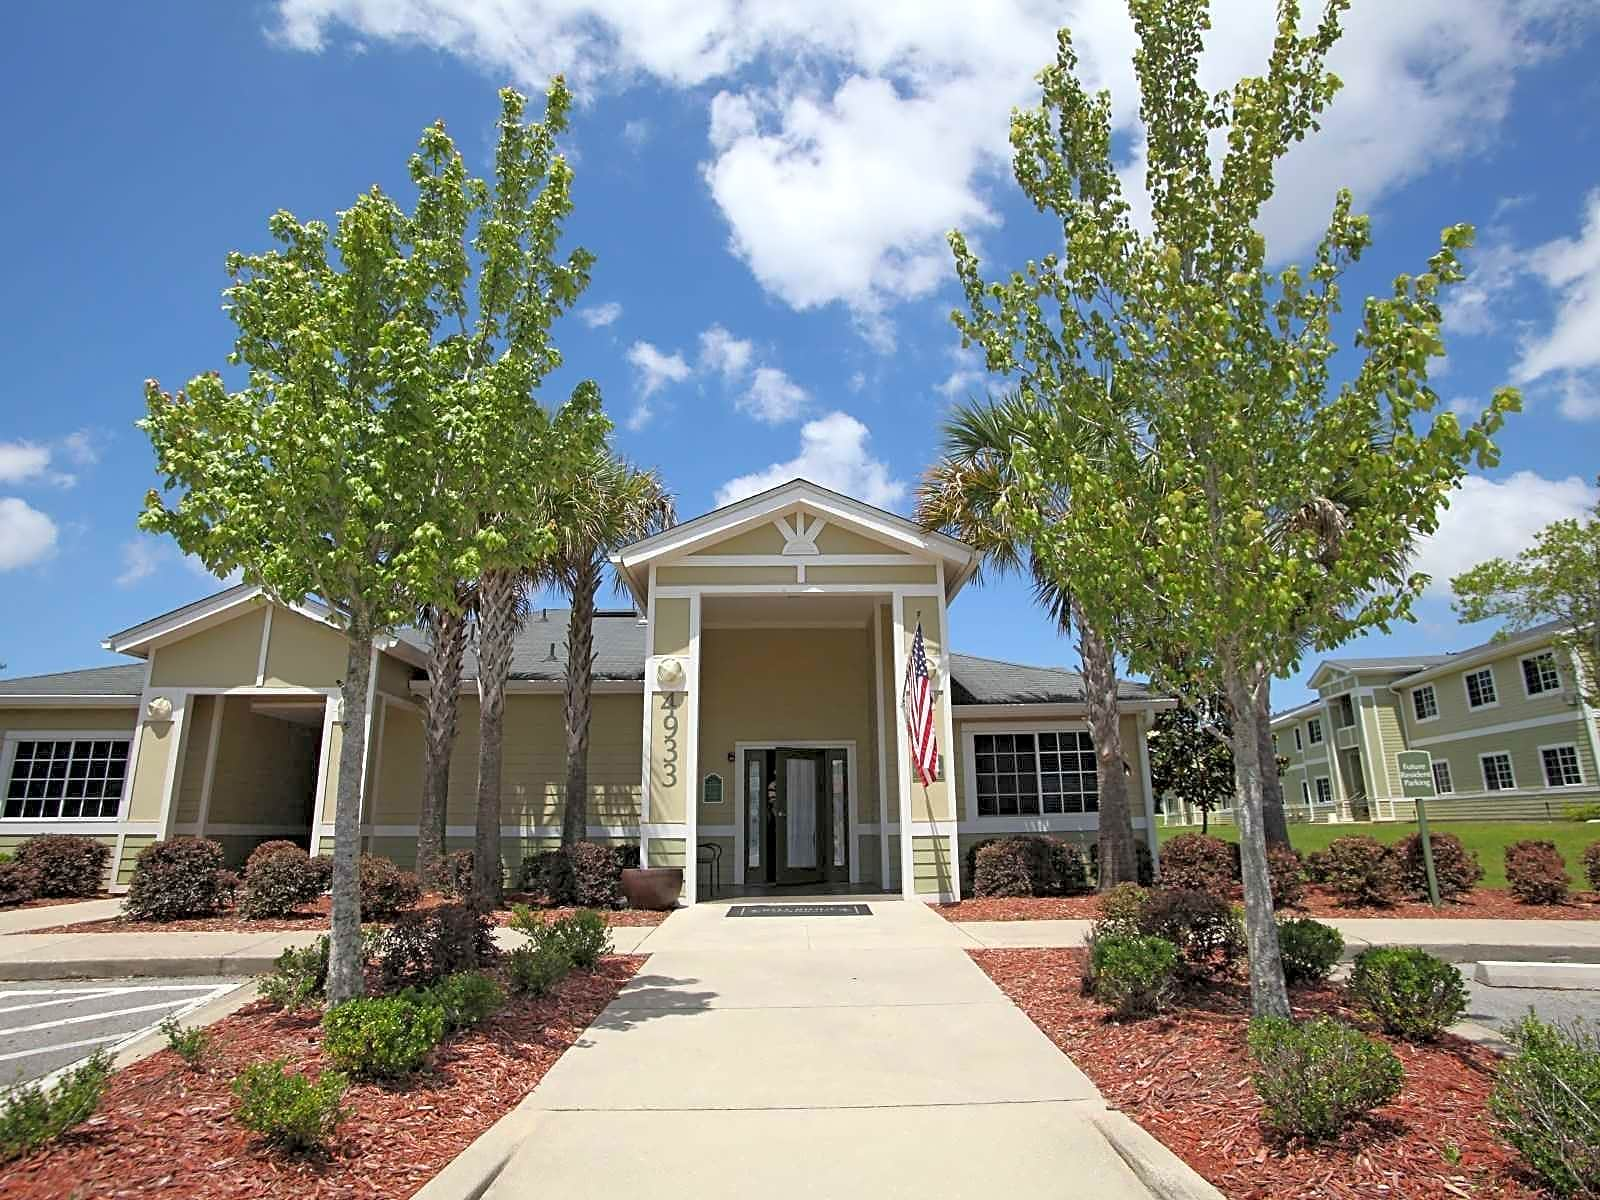 College Heights Apartments Pensacola Fl